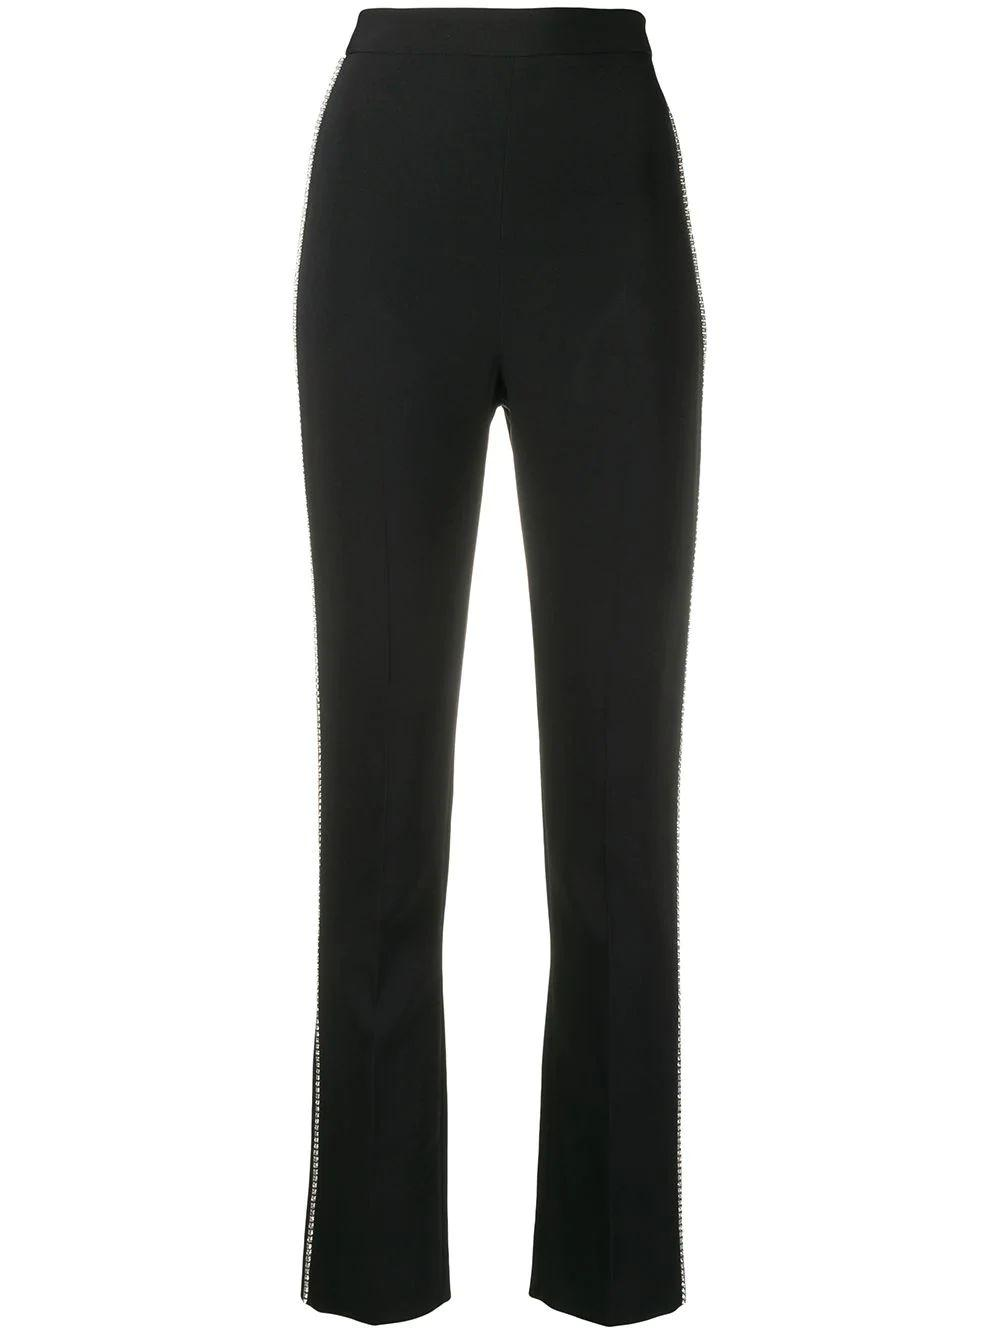 Crystal Chain Side Embellished Slim Leg Trouser Item # DK45TR